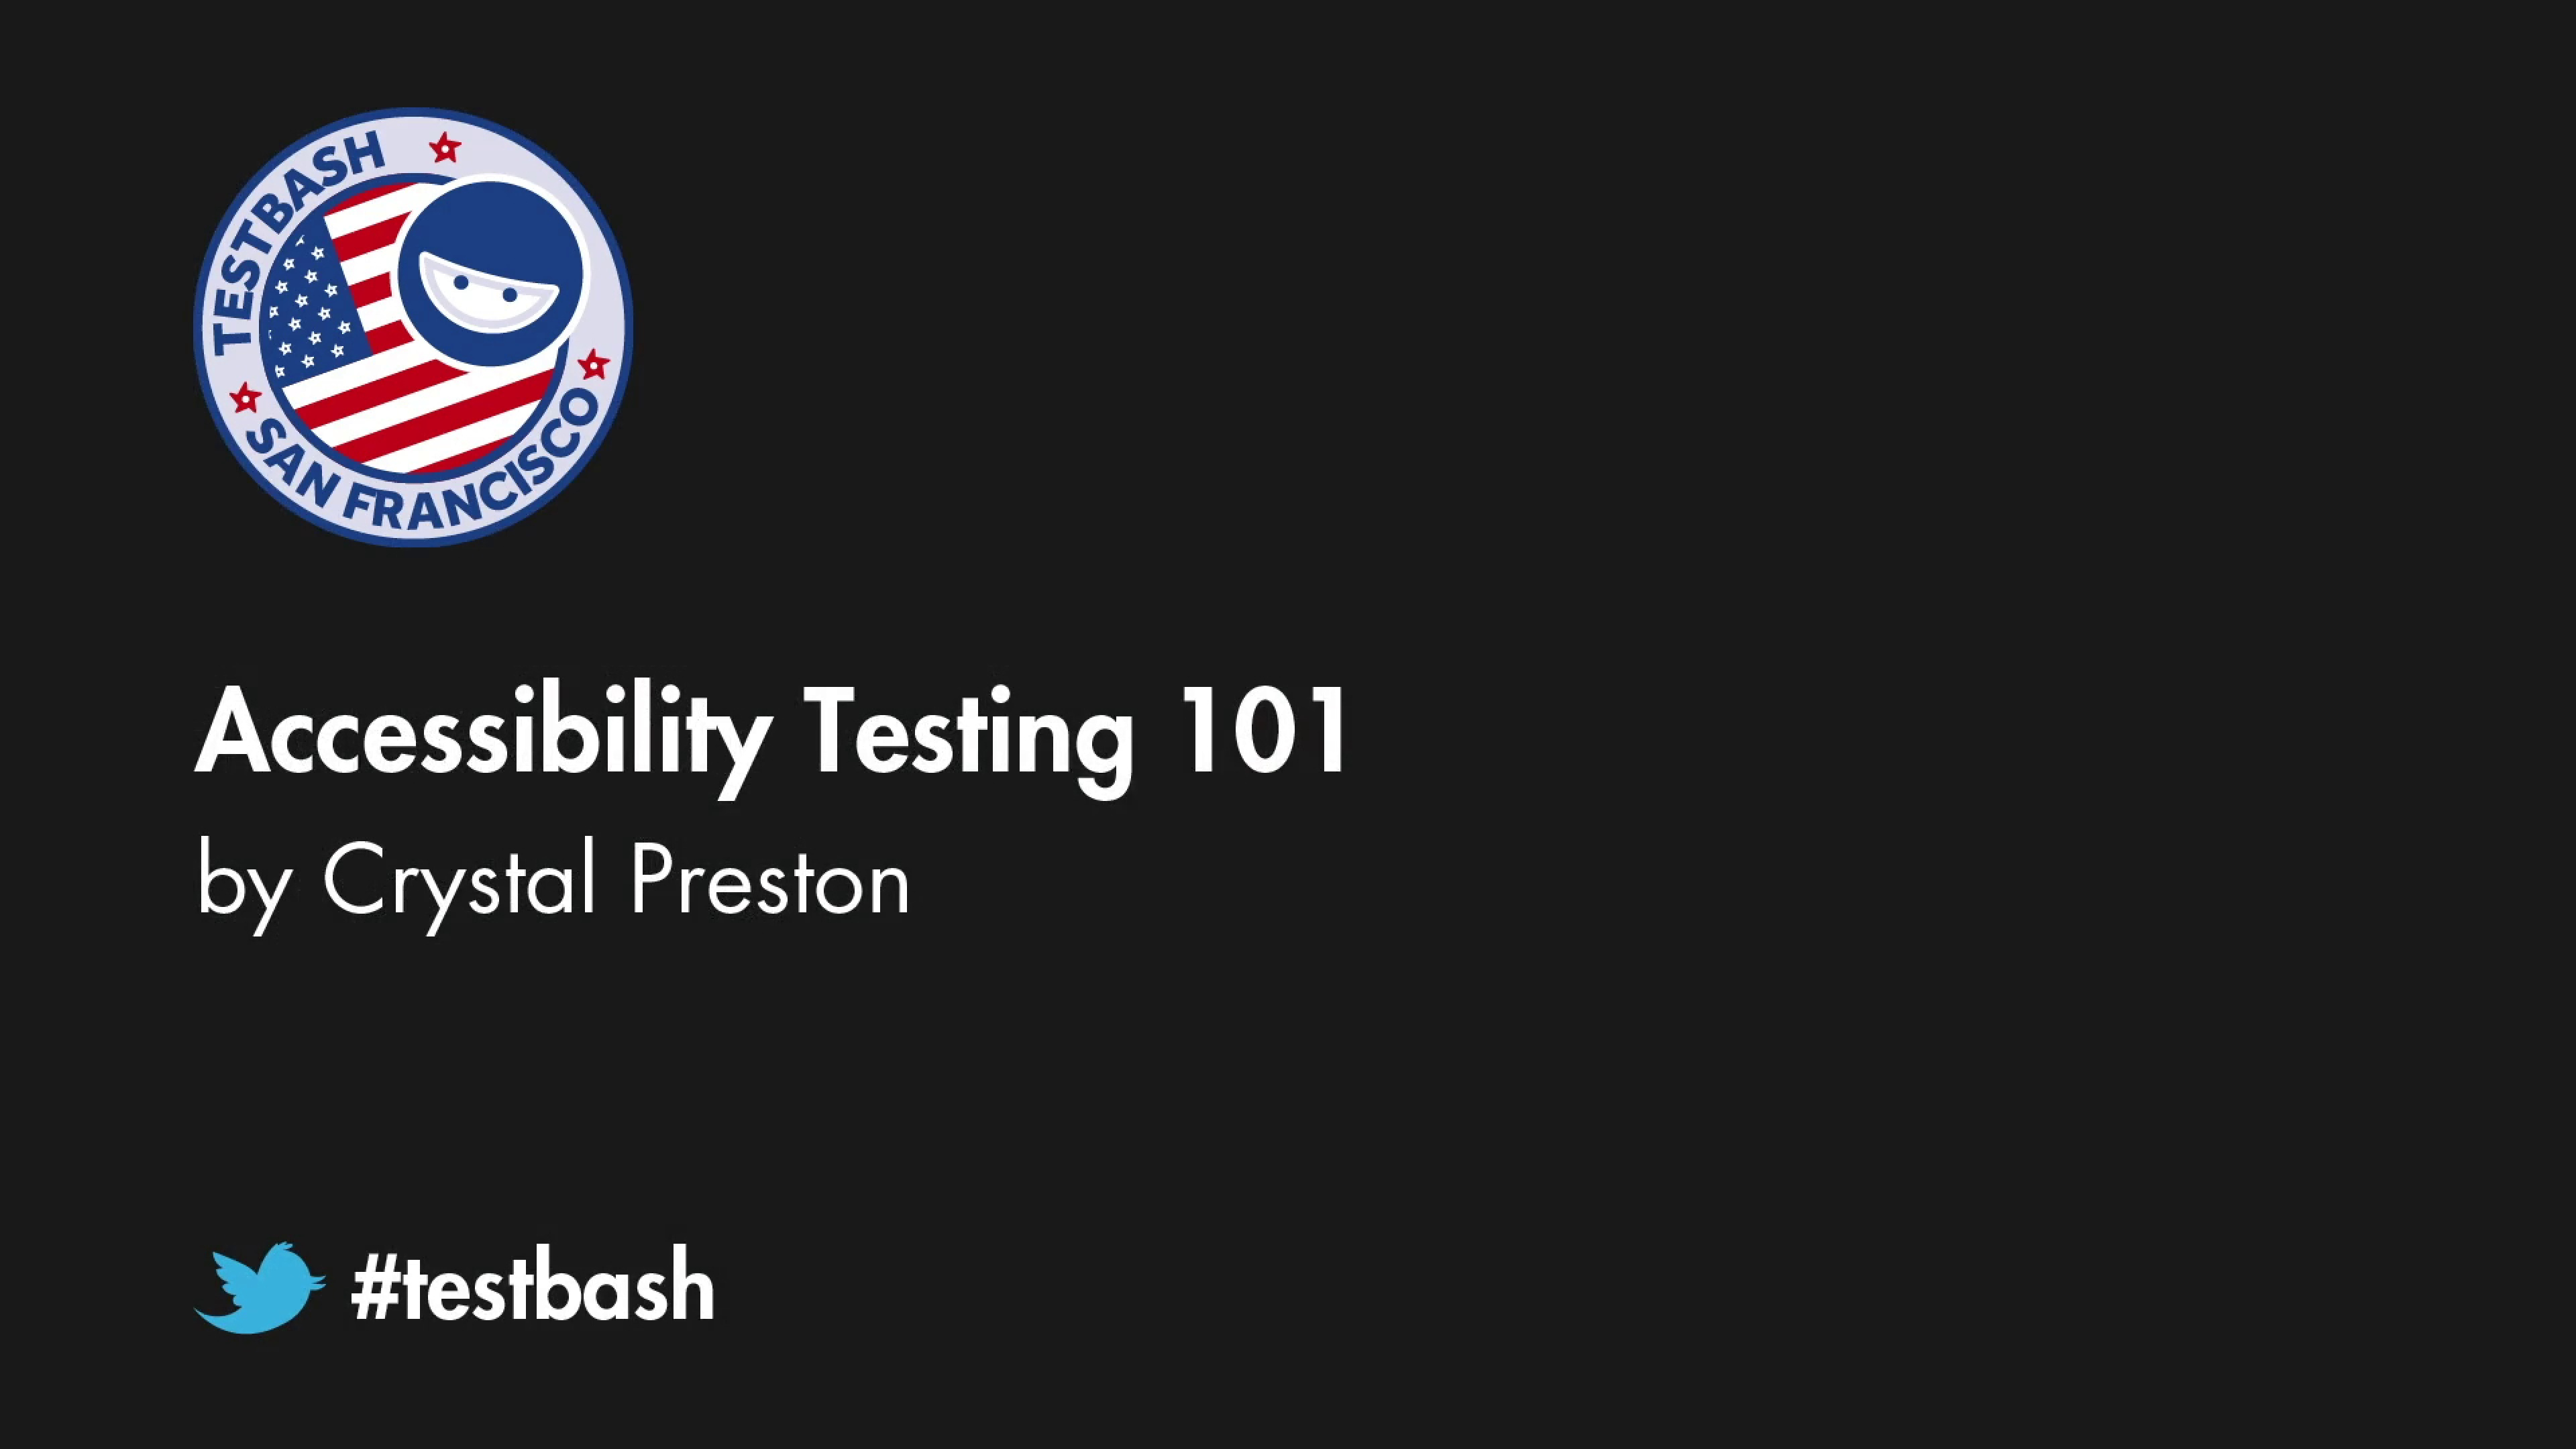 Accessibility Testing 101 - Crystal Preston